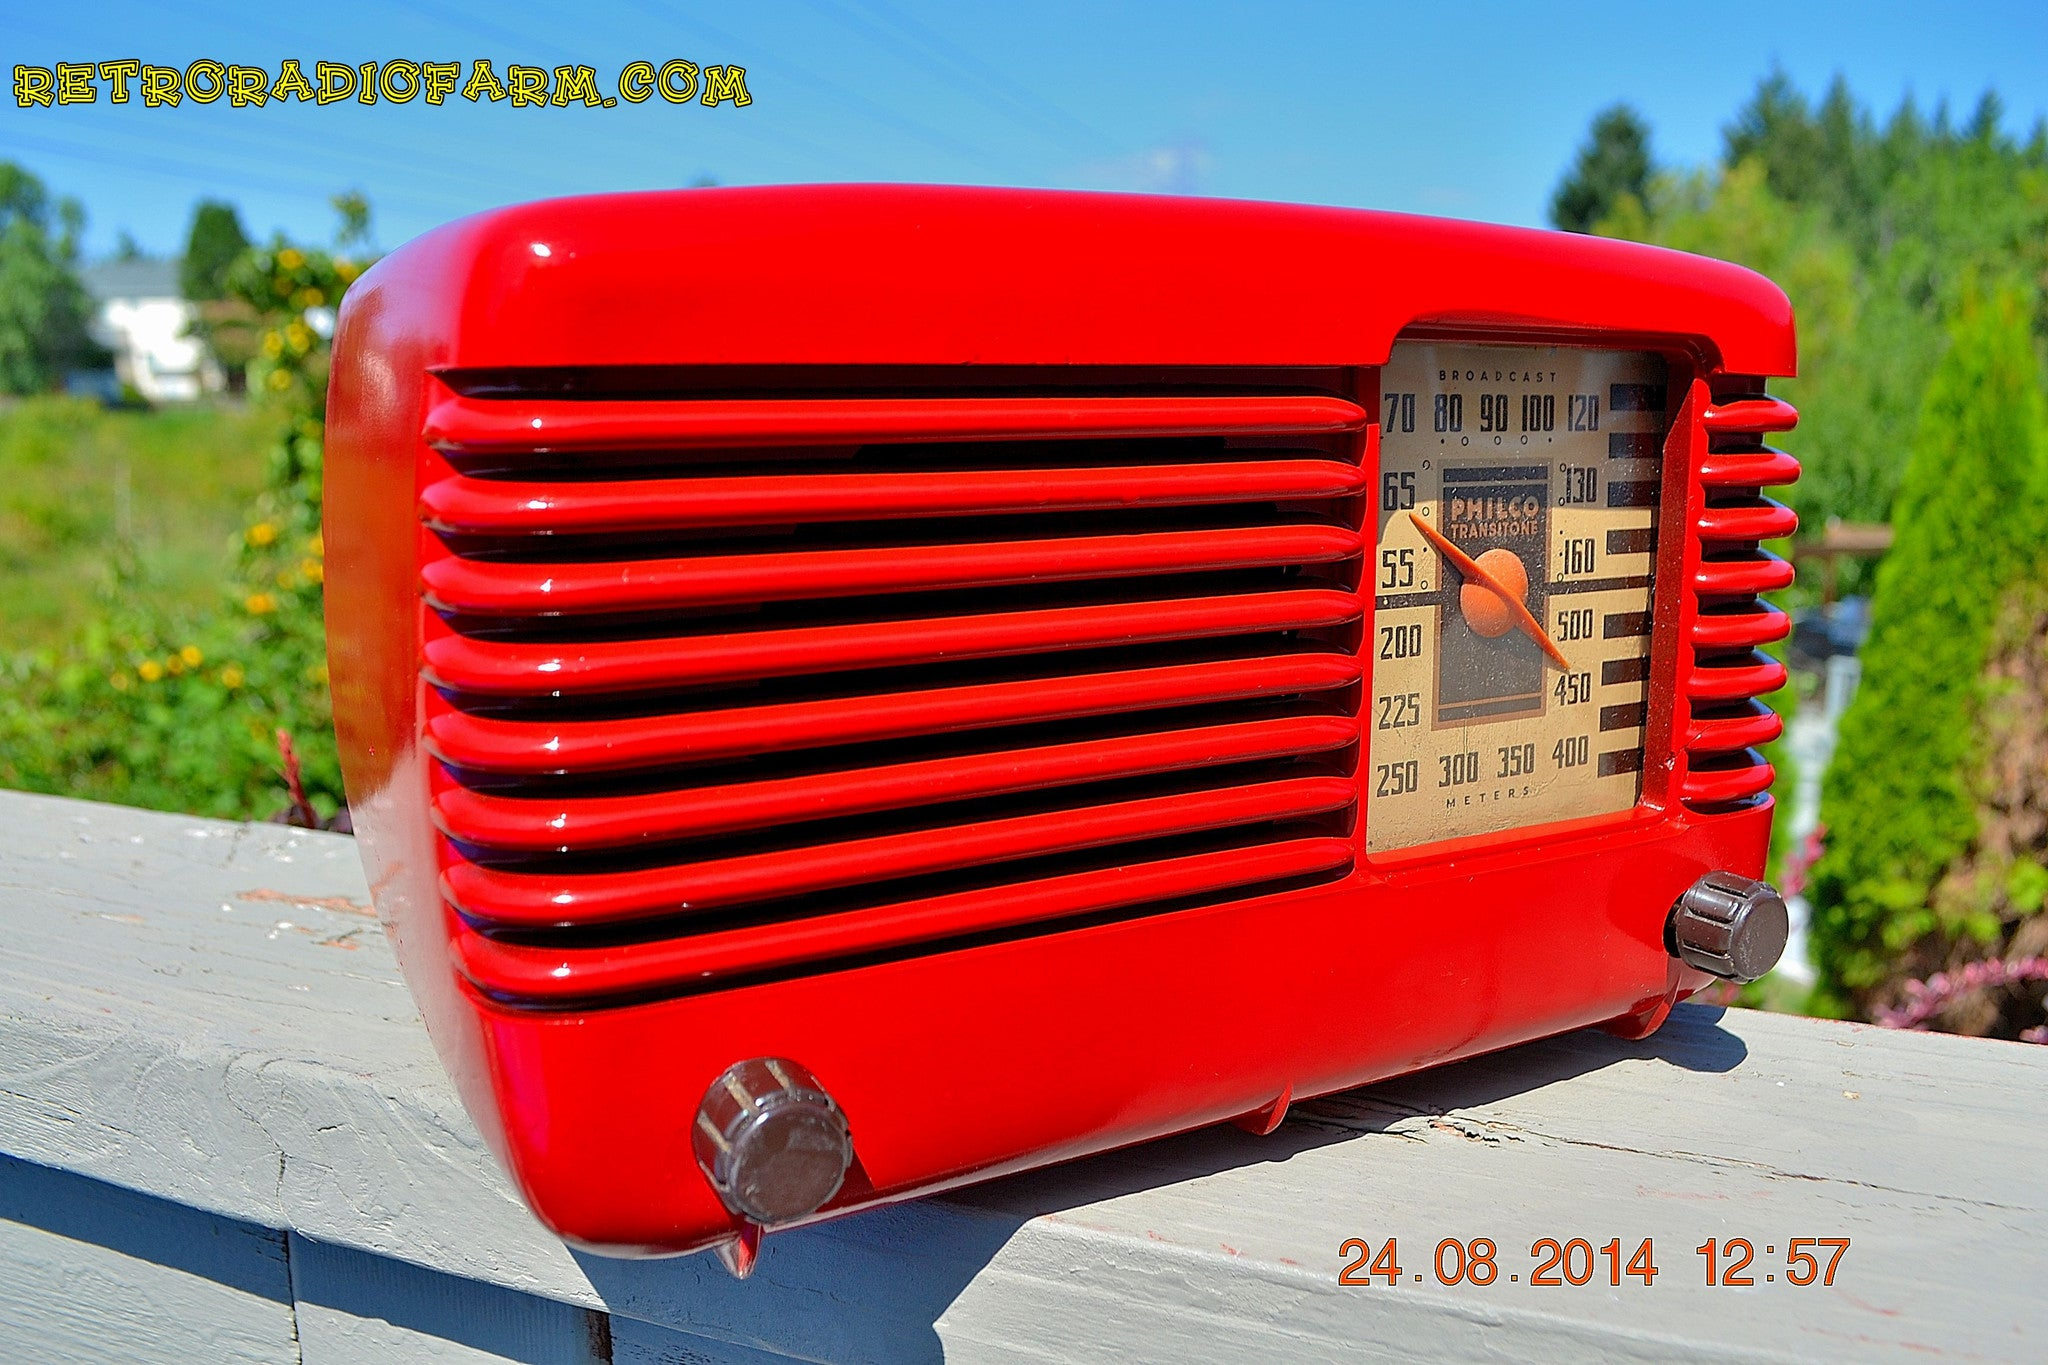 SOLD! - Oct 7, 2014 LIPSTICK RED Vintage Deco Retro 1947 Philco Transitone 46-200 AM Bakelite Tube Radio Works! Wow! , Vintage Radio - Philco, Retro Radio Farm  - 1